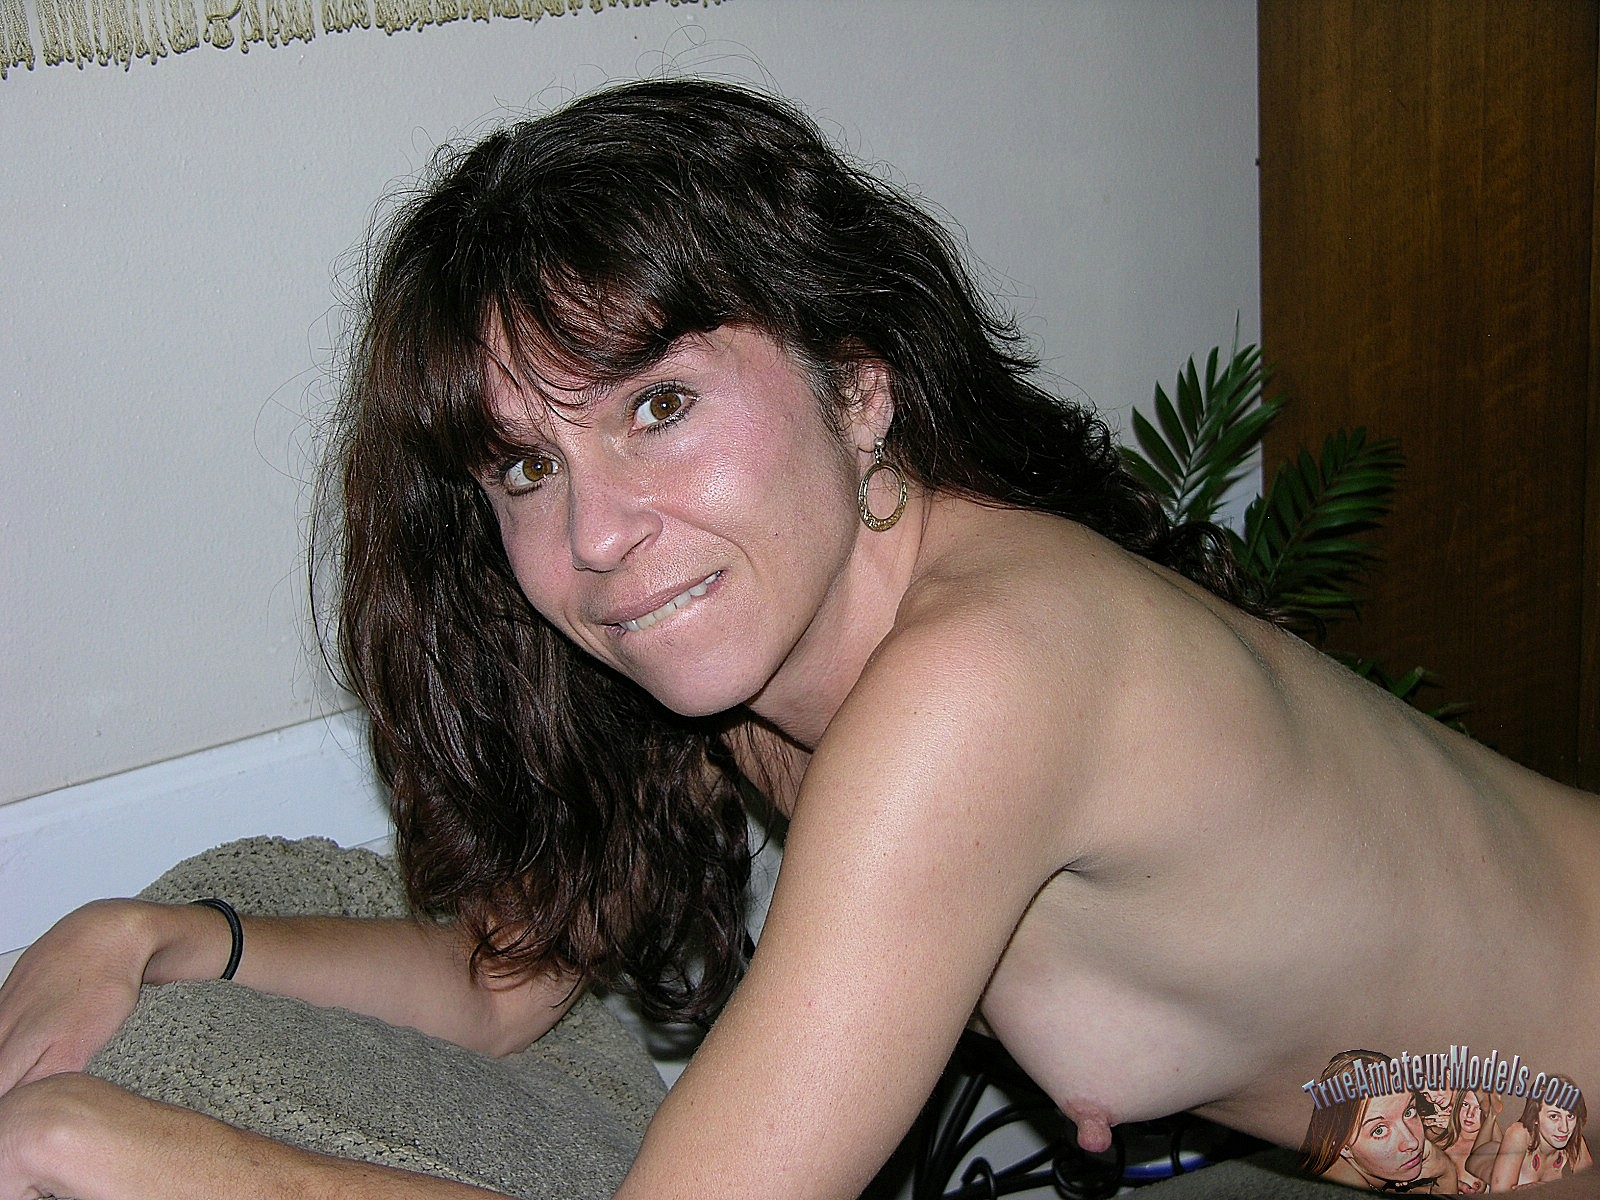 soccer mom amateur topless